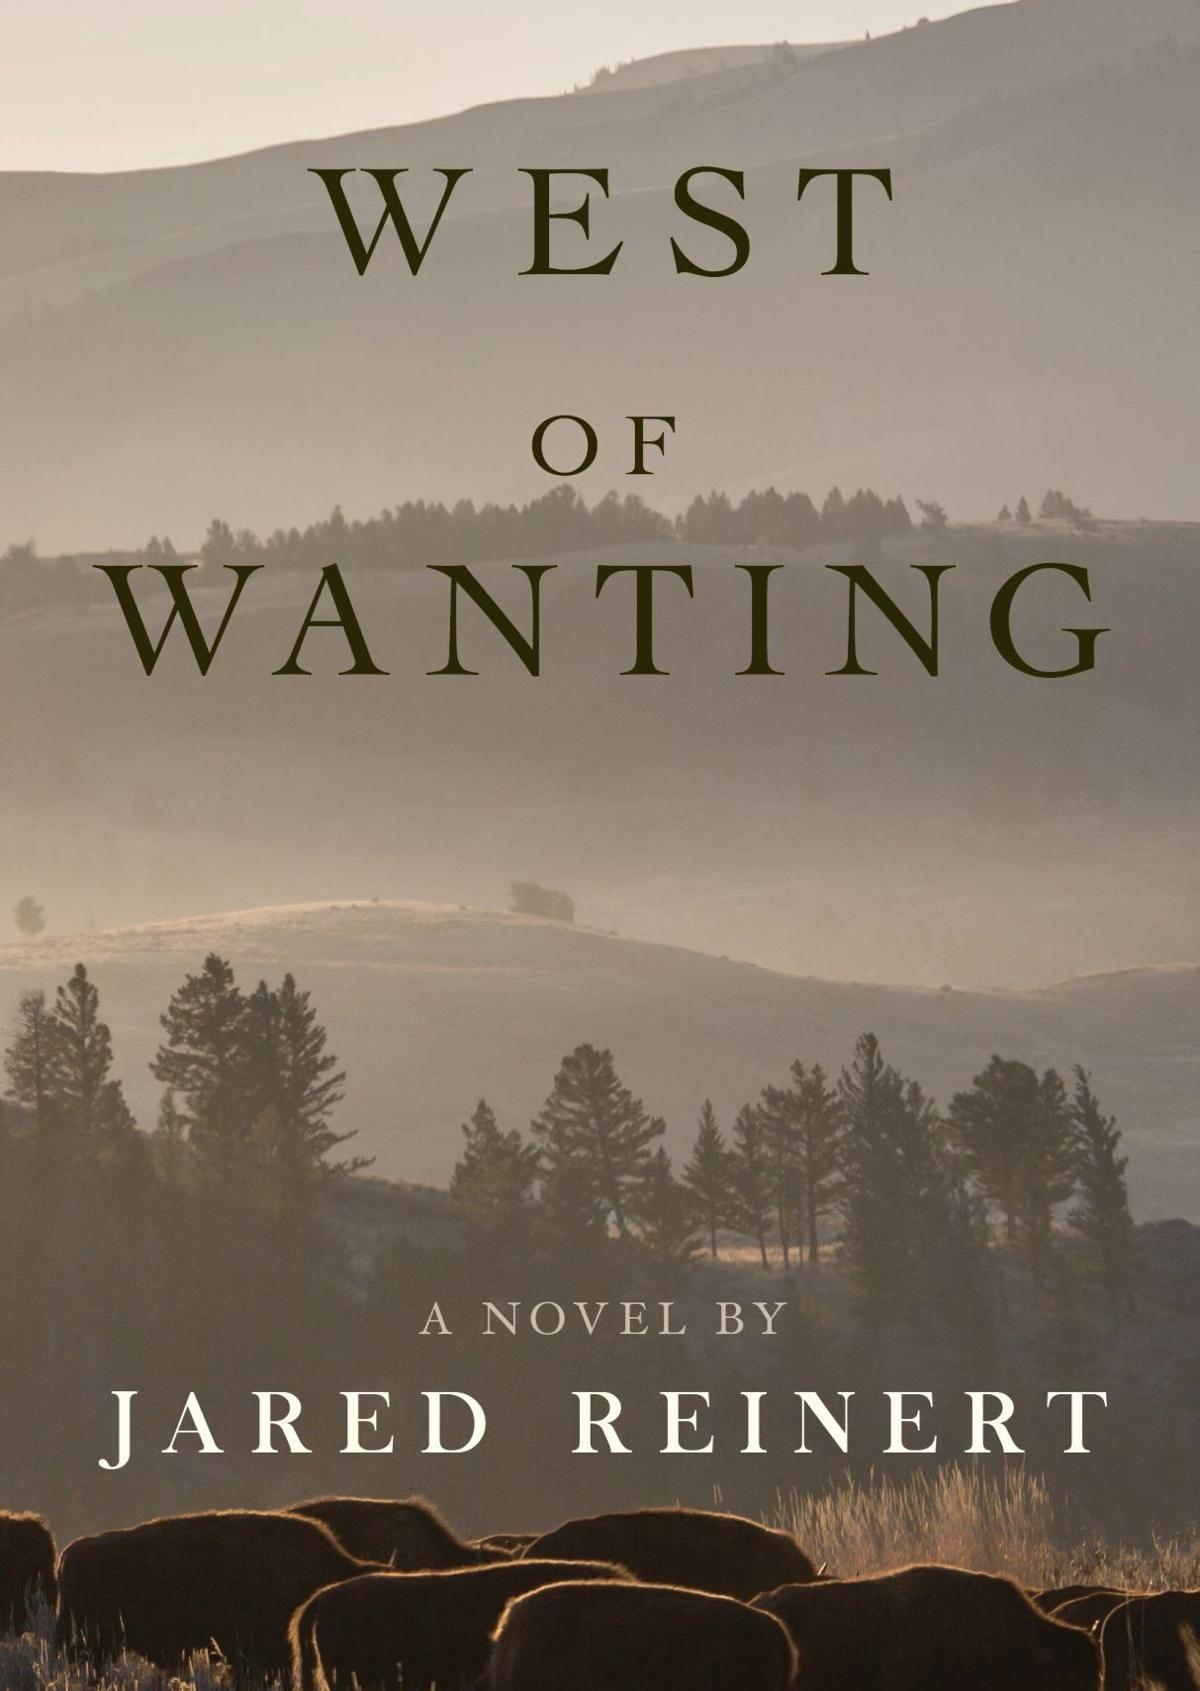 Cover - West of Wanting.jpg